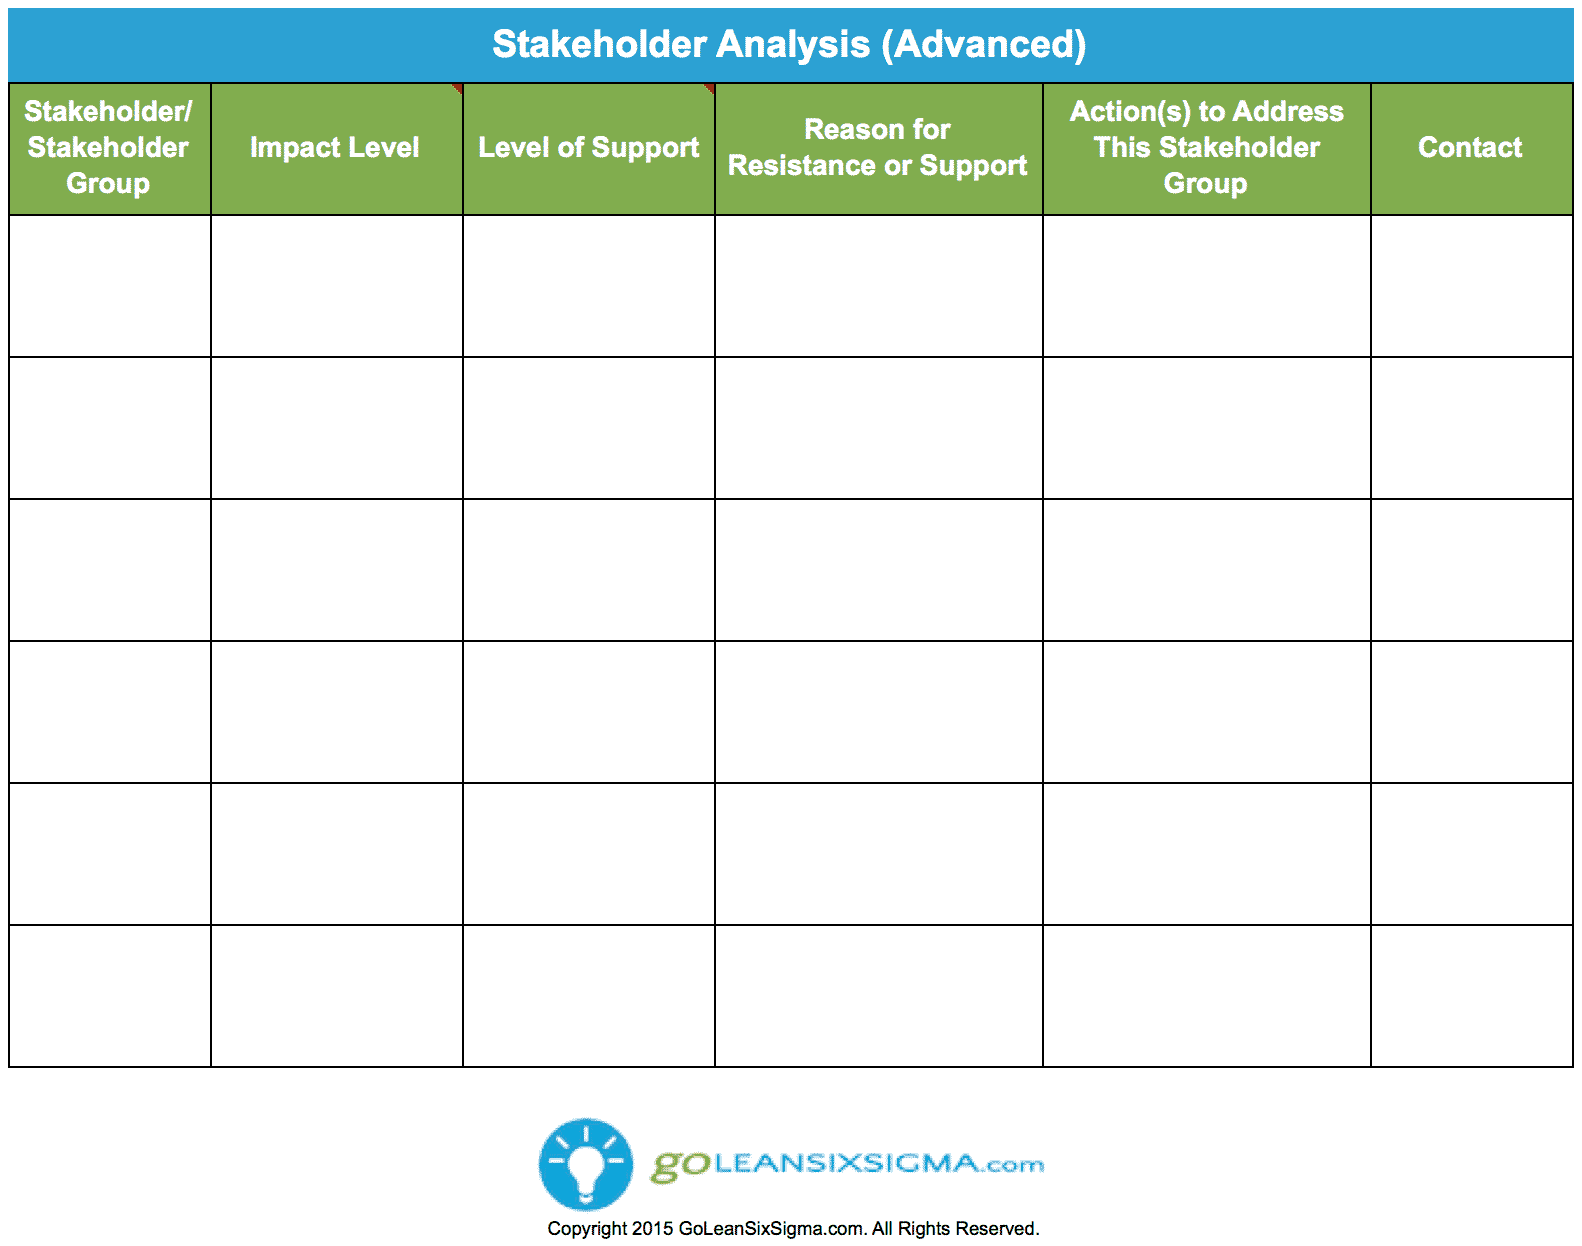 Stakeholder Analysis (Advanced) – GoLeanSixSigma.com